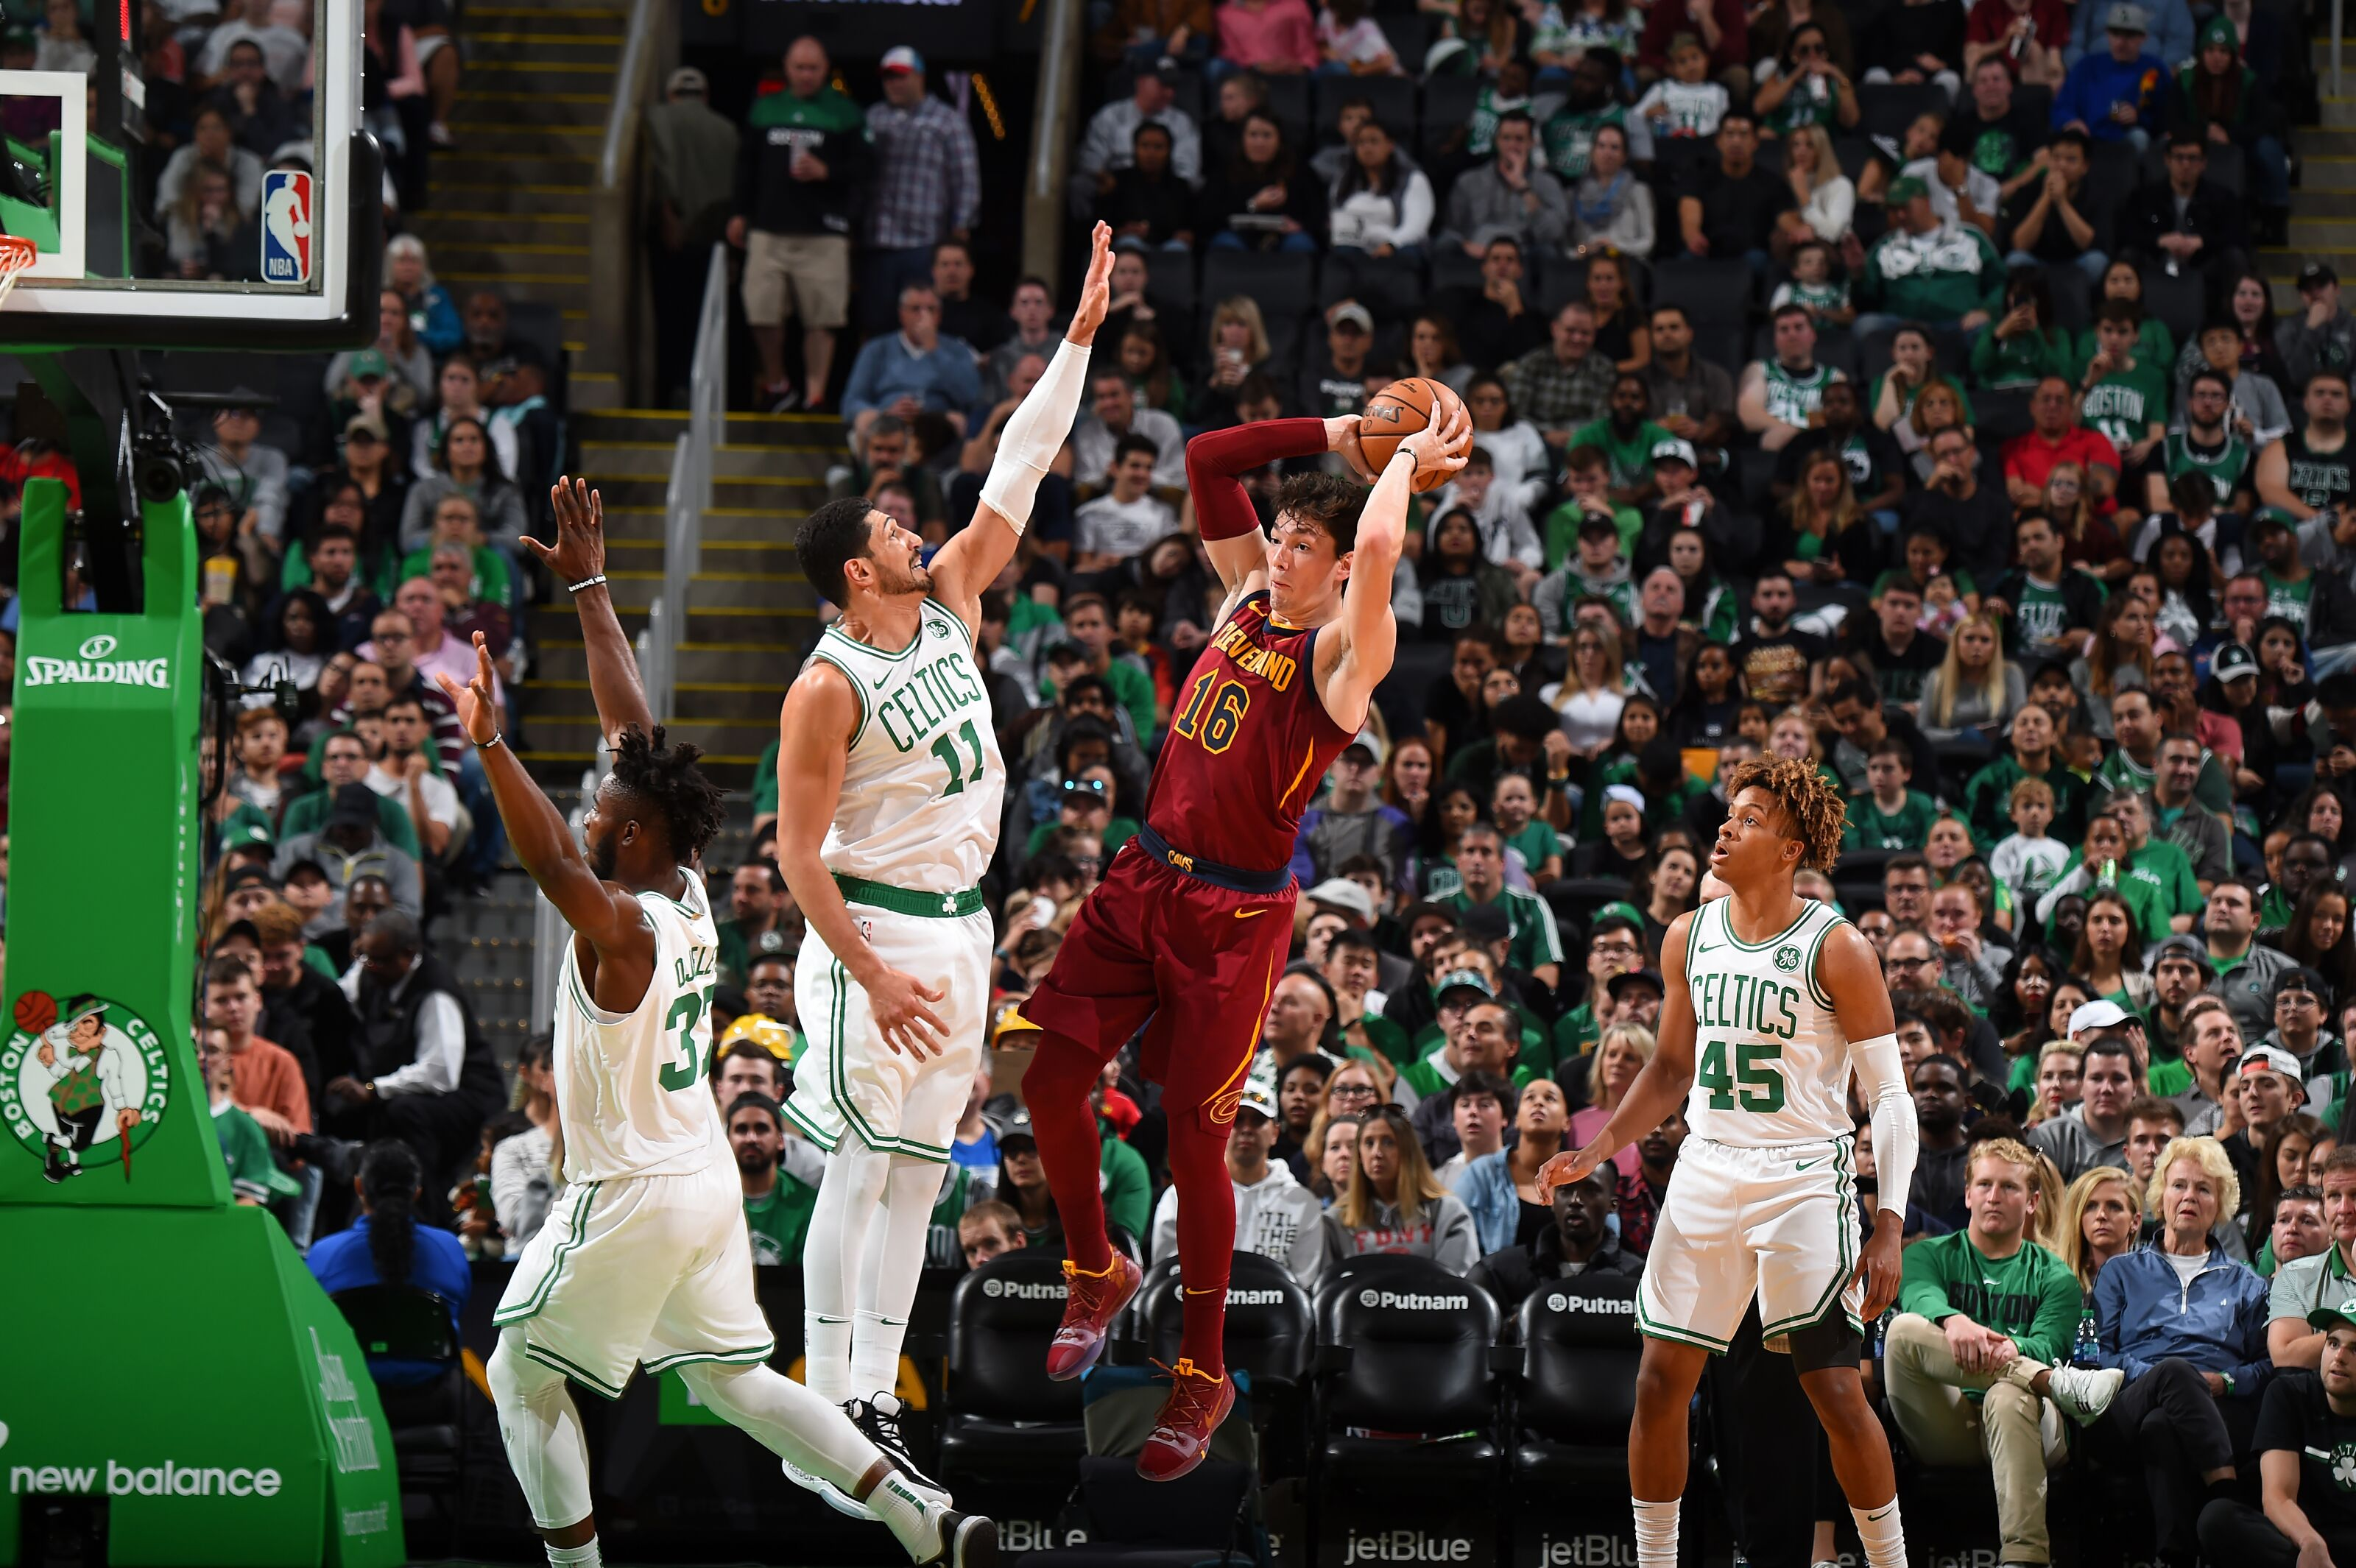 Cavs: Won't be much to write home about vs. massively short-handed Celtics